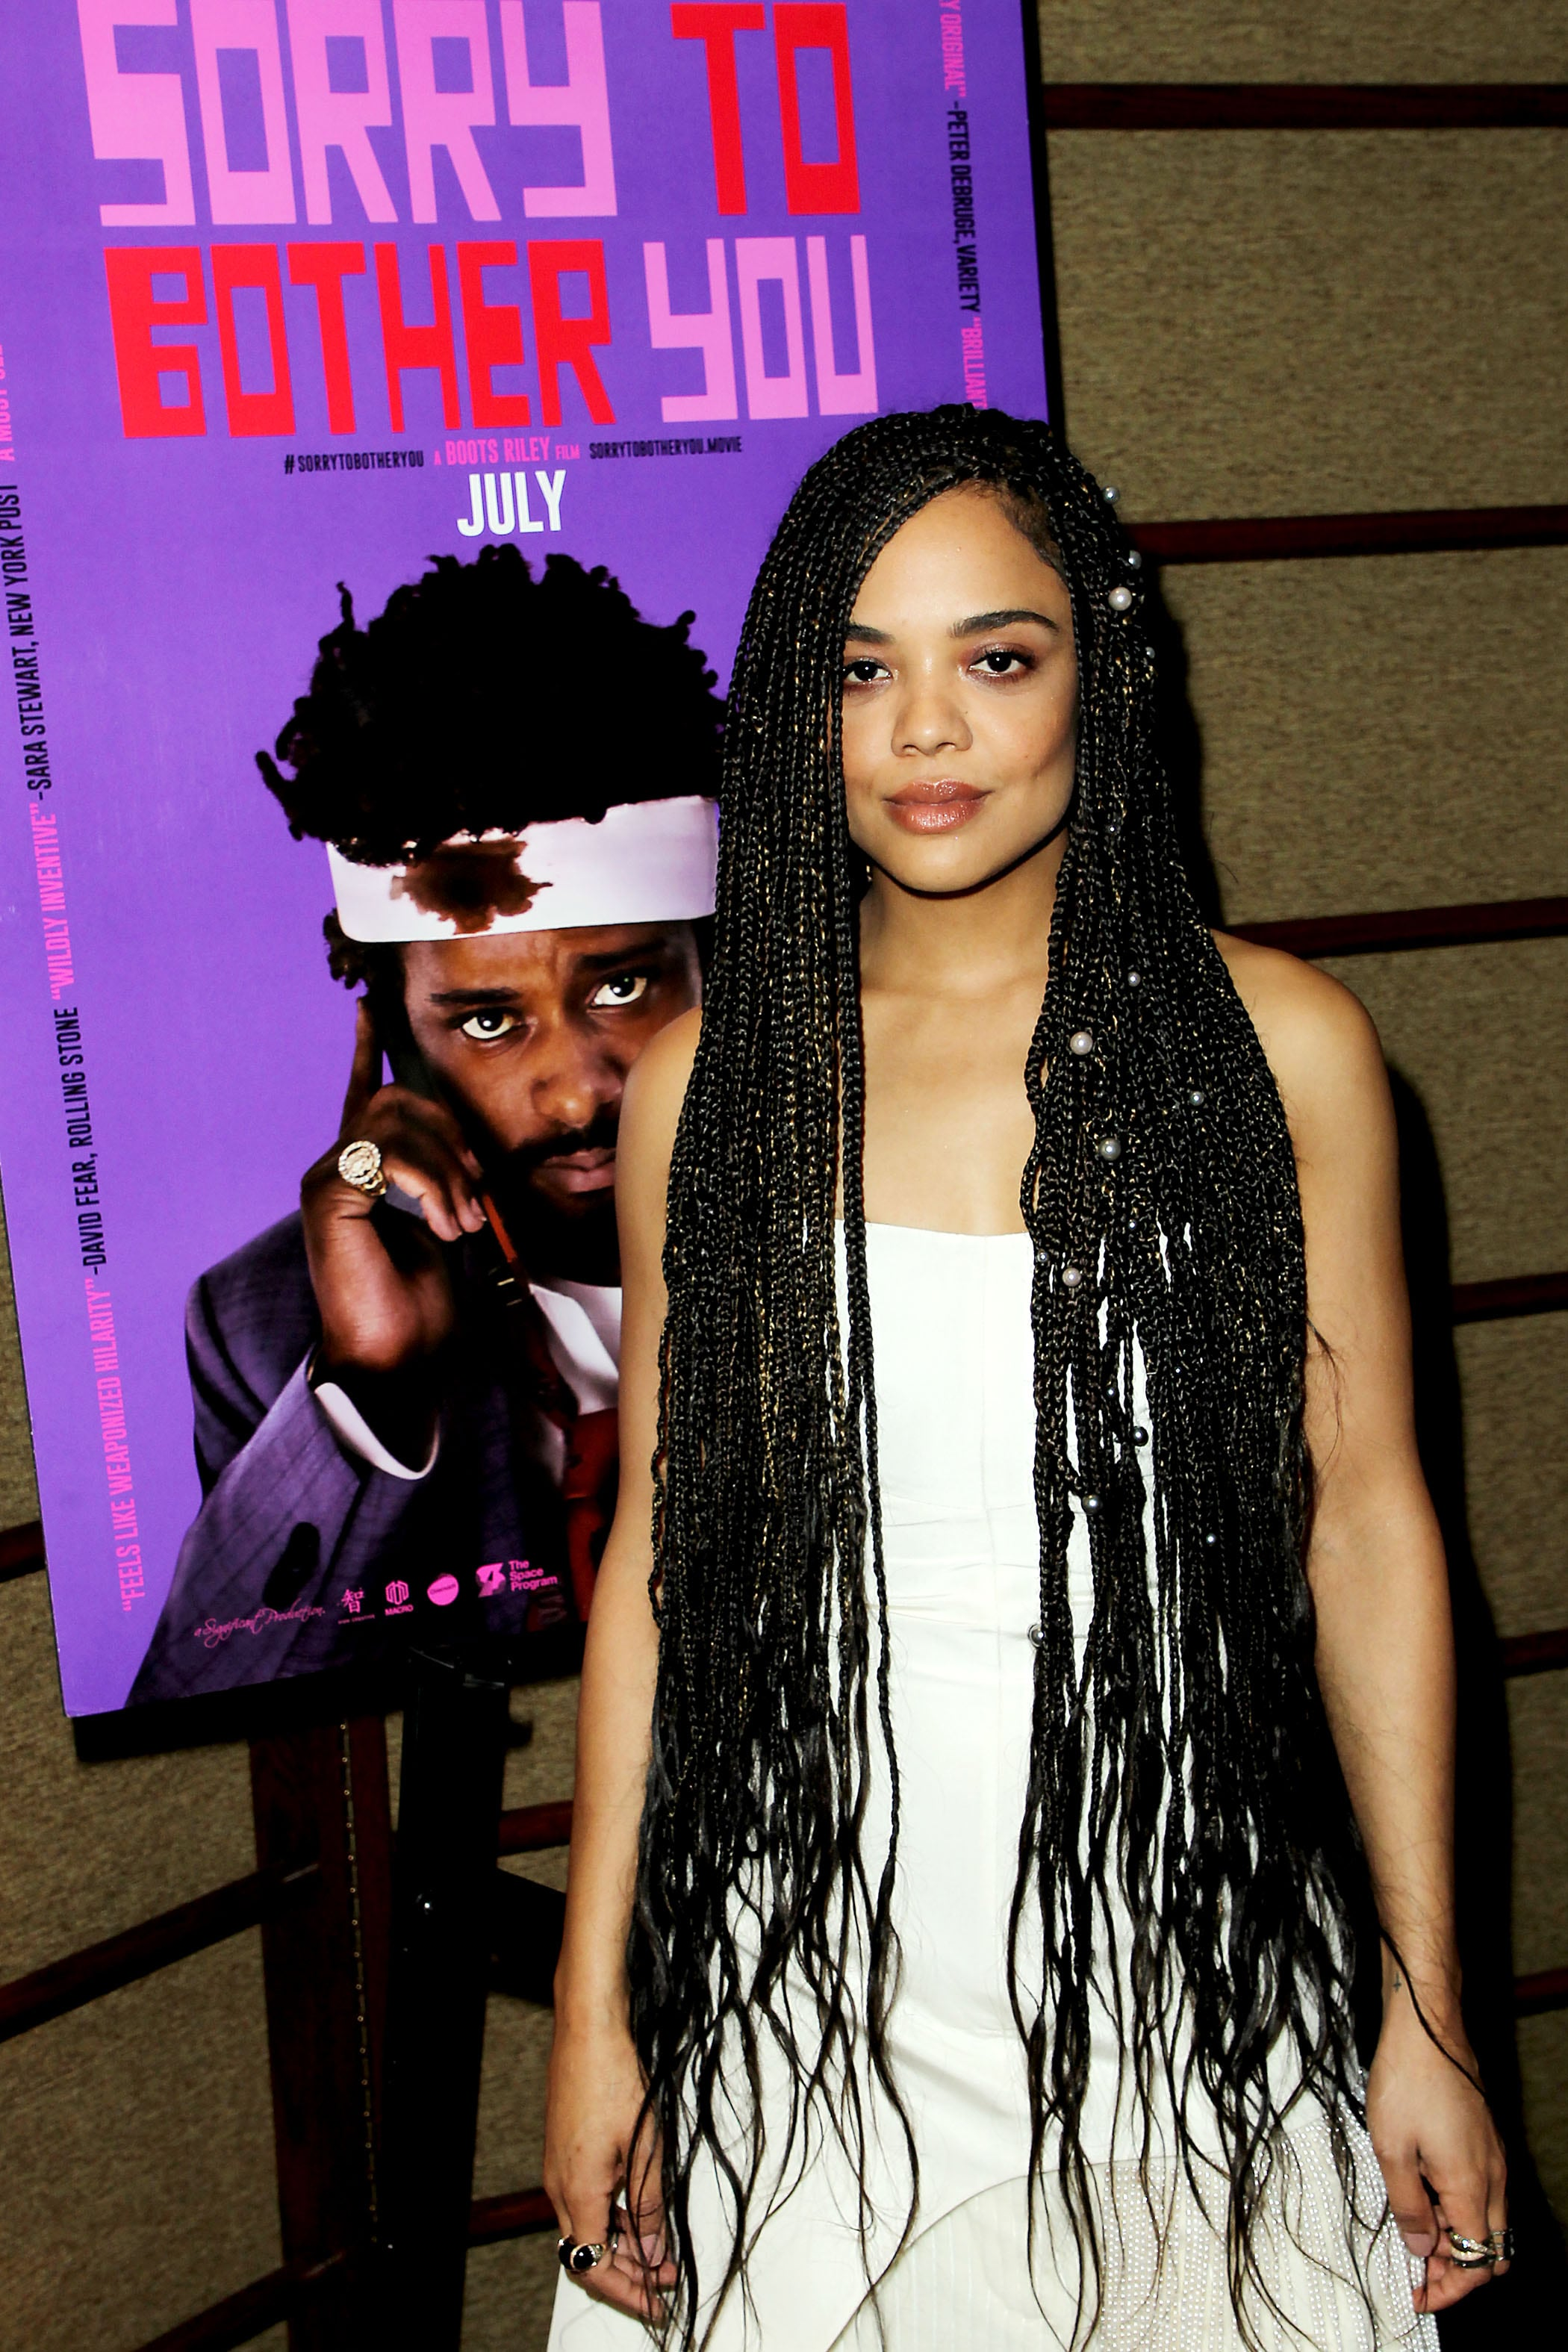 Loose box braids: Close up shot of Tessa Thompson with long, dark brown box braids with loose ends, decorated with pearls, wearing a white dress and posing at an event.